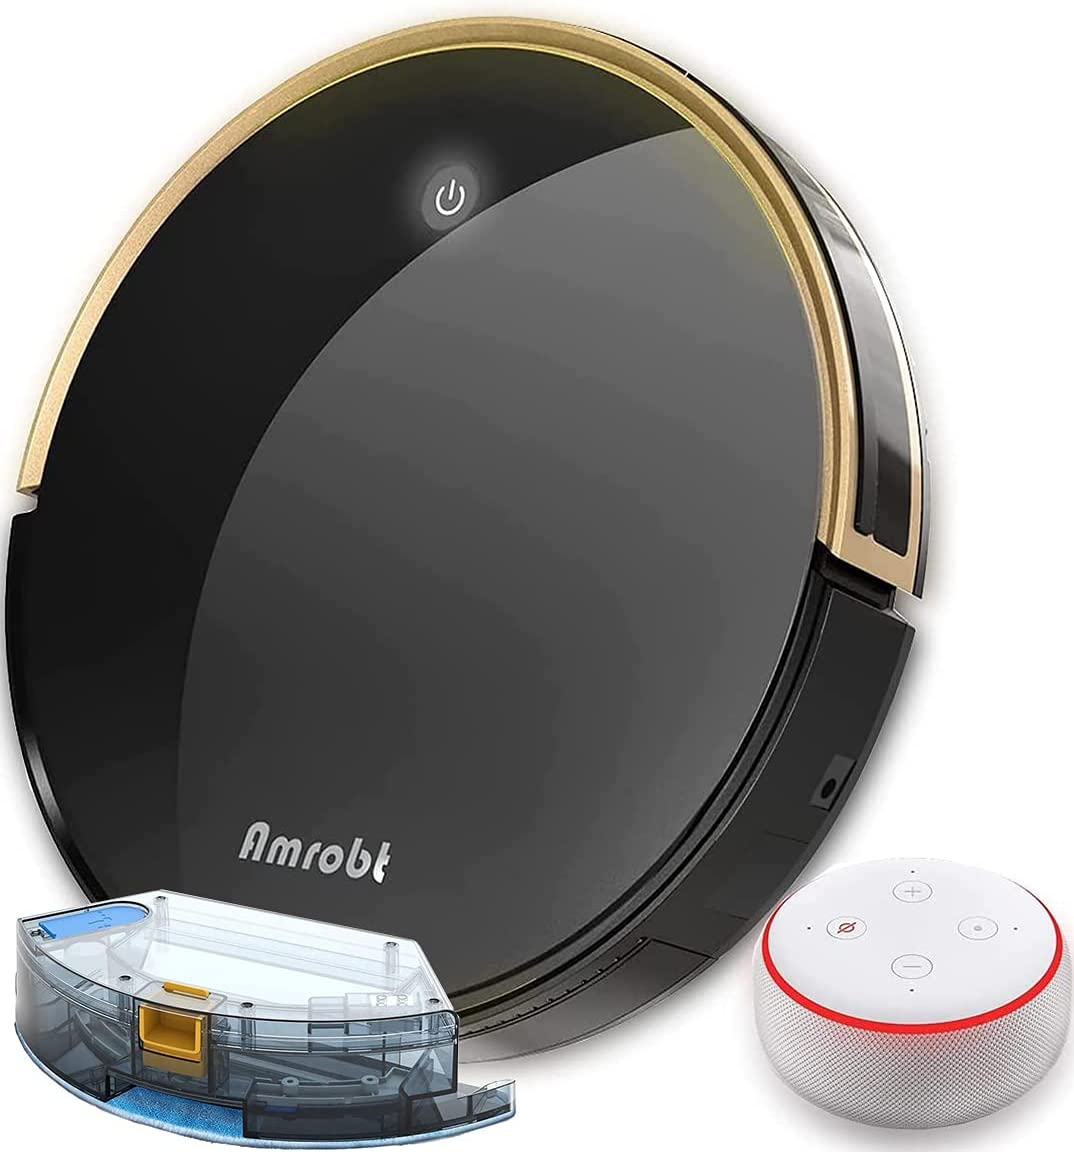 New sales Robot Vacuum and Mop Amrobt Robotic Challenge the lowest price X9 Mopping Sweeping Smart